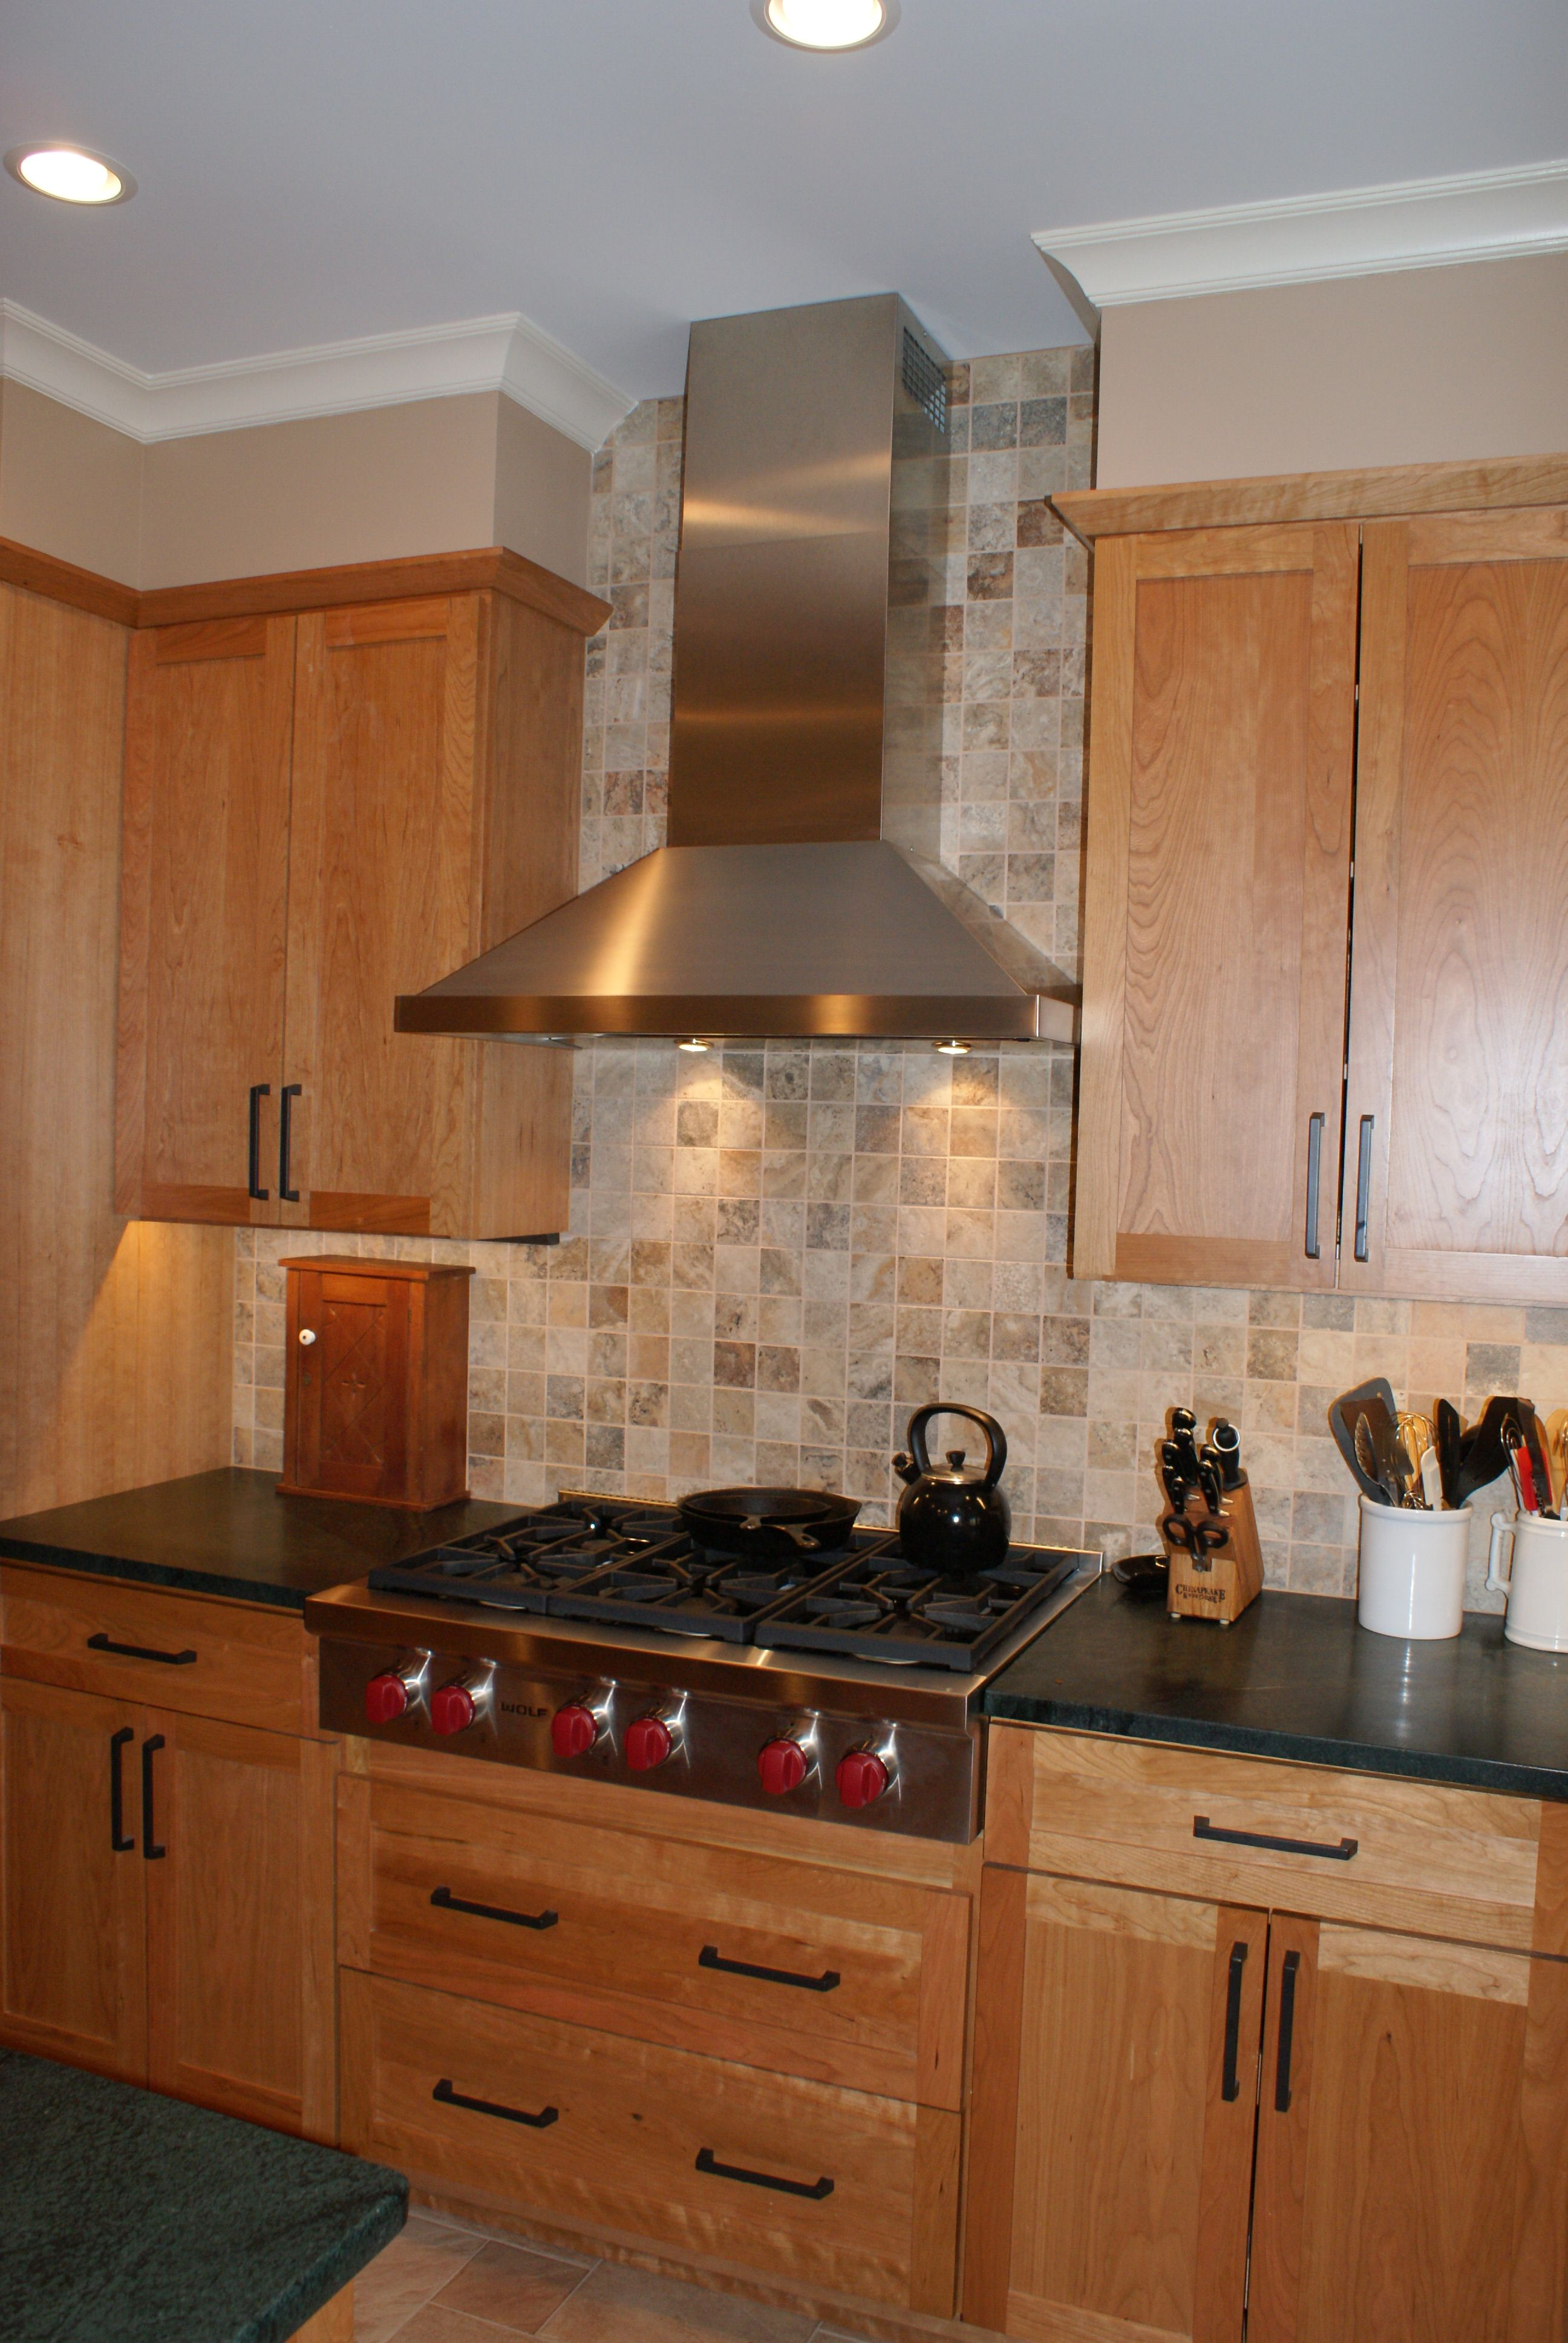 Kitchen Cabinets To Ceiling With Glass Backsplash Tile To Ceiling Behind Range Hood Kitchens